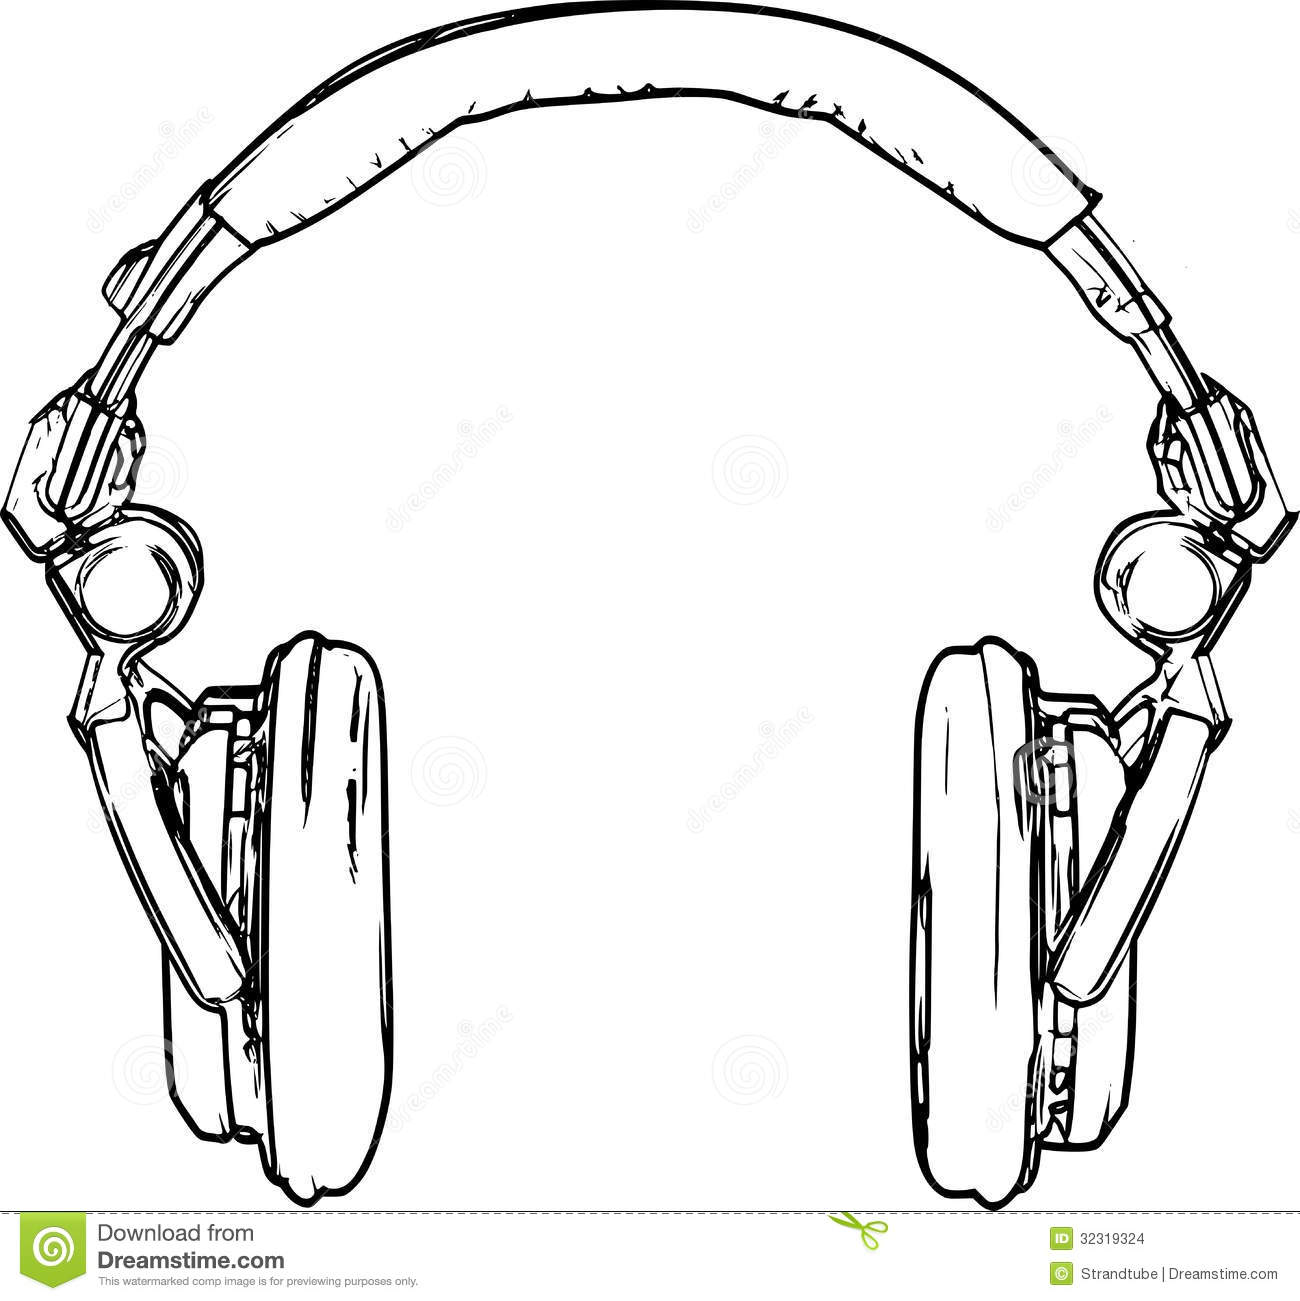 Drawn headphone DeepLife Google headphone sketch sketch